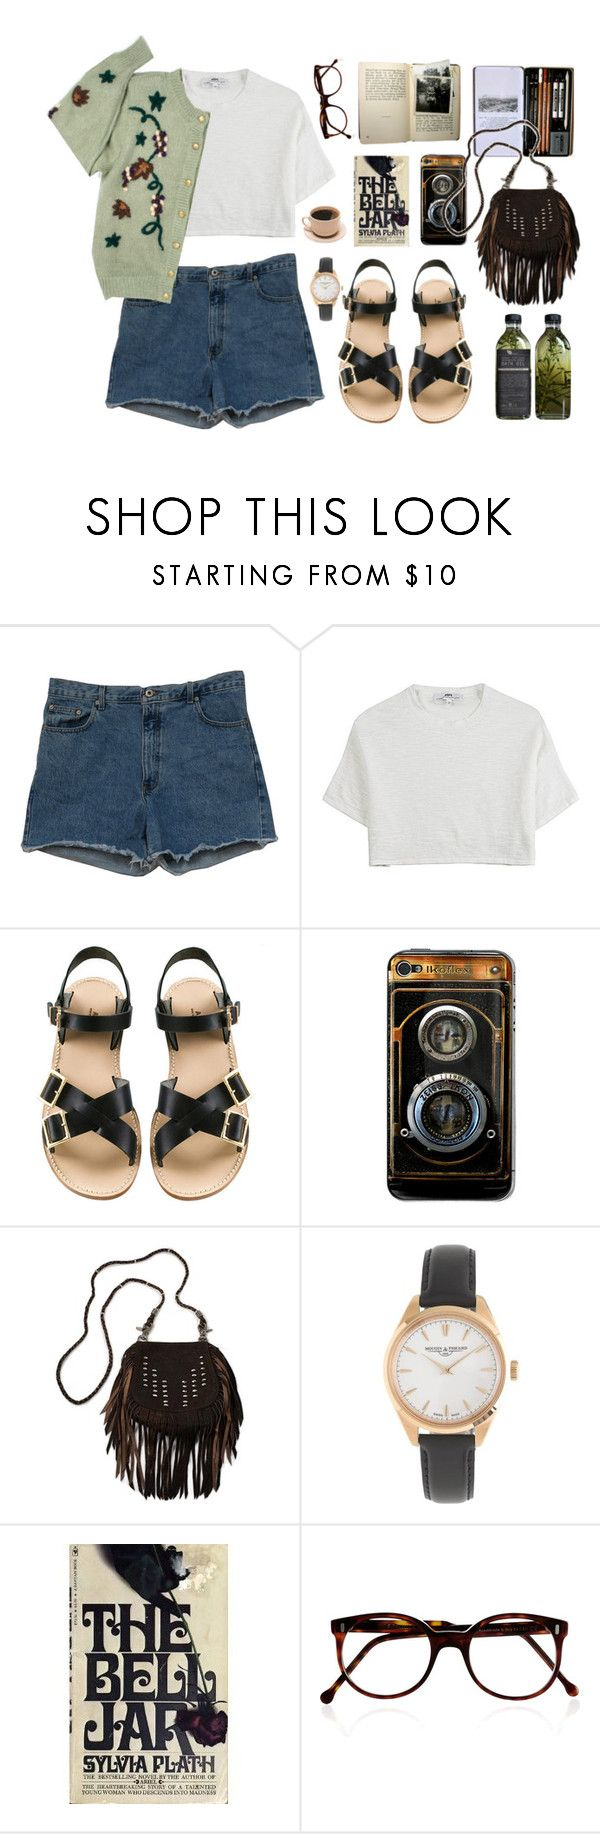 """""""Lyla"""" by green-wild ❤ liked on Polyvore featuring Abercrombie & Fitch, Hope, A.P.C., Zeiss, Vanessa Mooney, J.Crew, Cutler and Gross, vintage, Hipster and indie"""